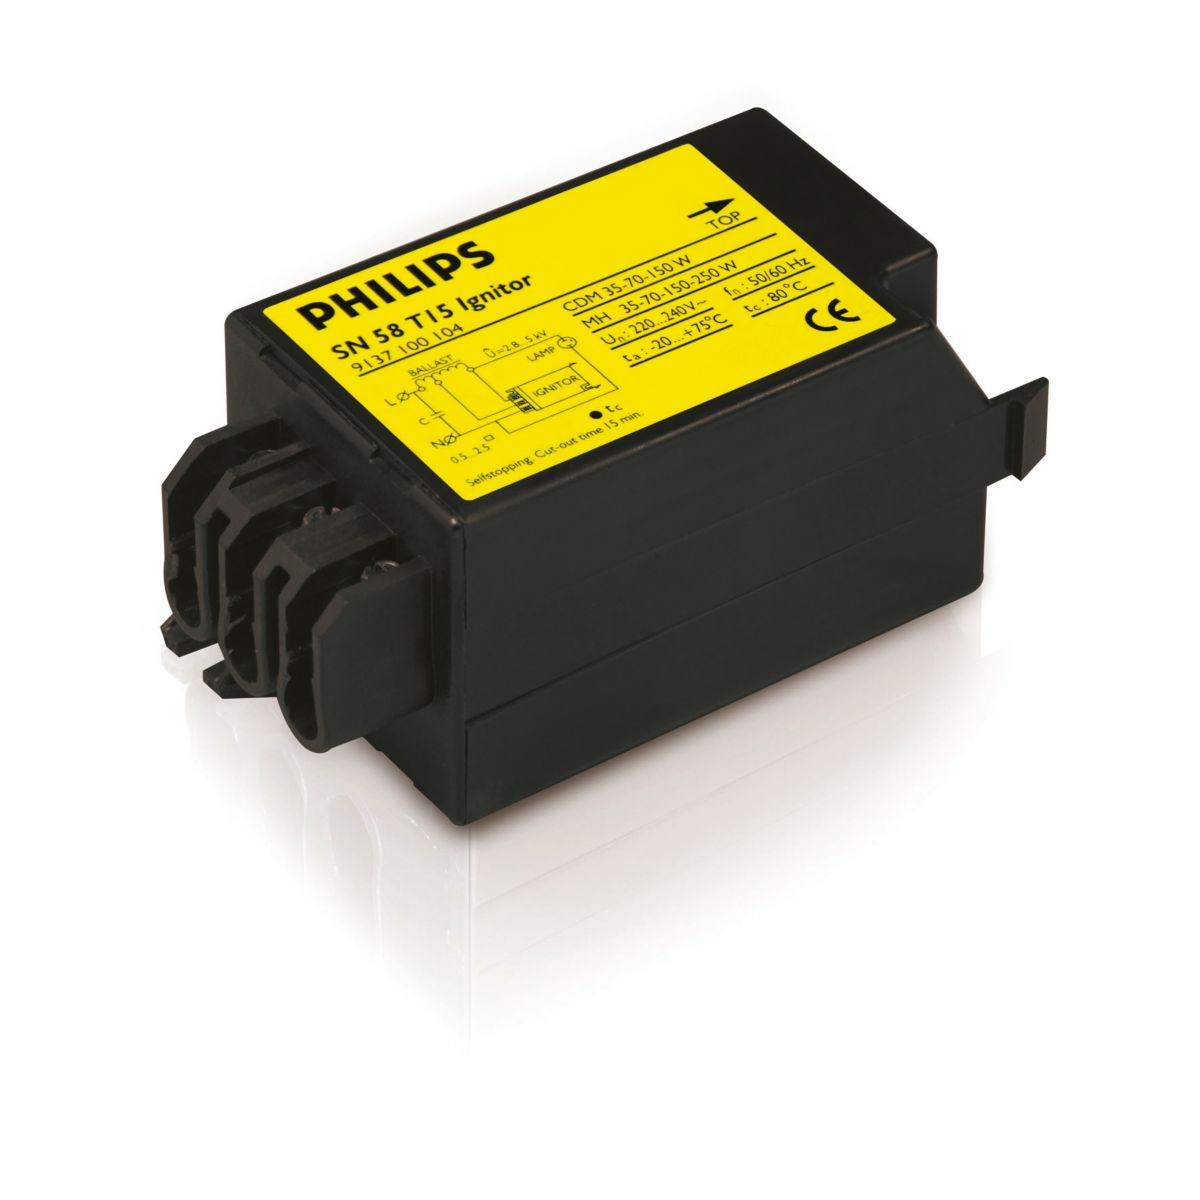 Electronic semiparallel ignitor for HID lamp circuits